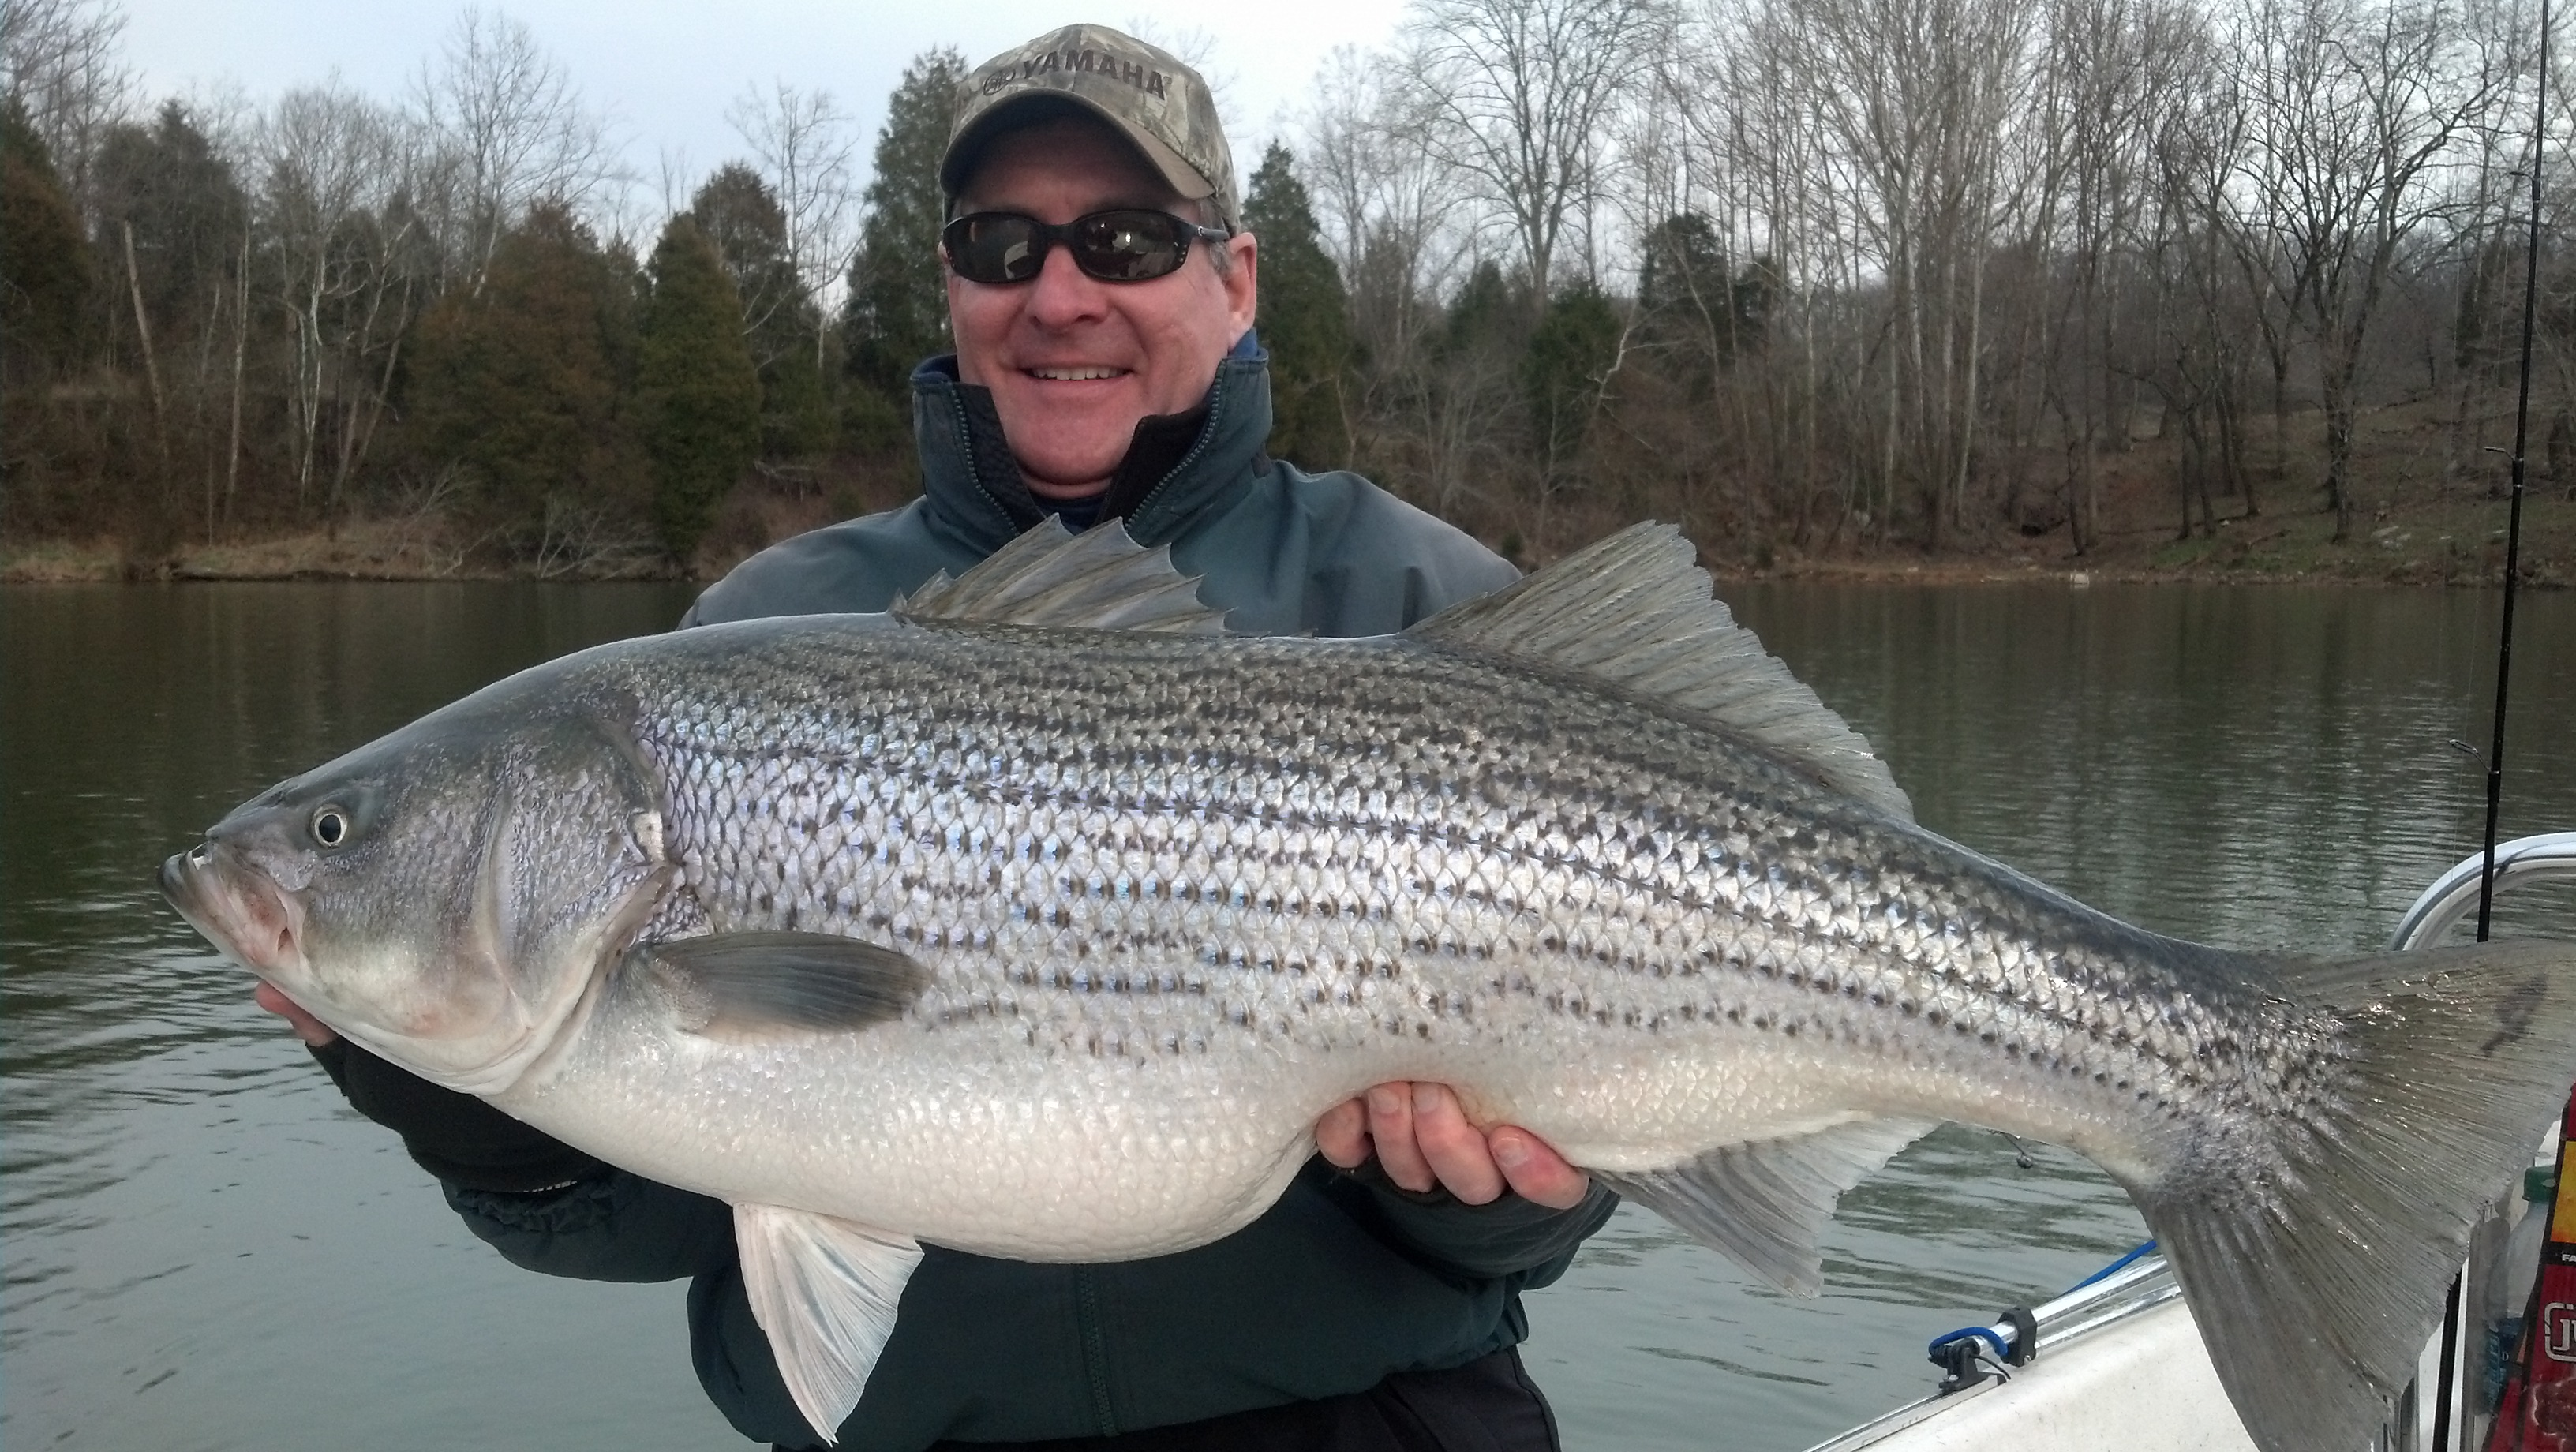 Jay 39 s striper guide service is now providing novice and for Norris lake fishing